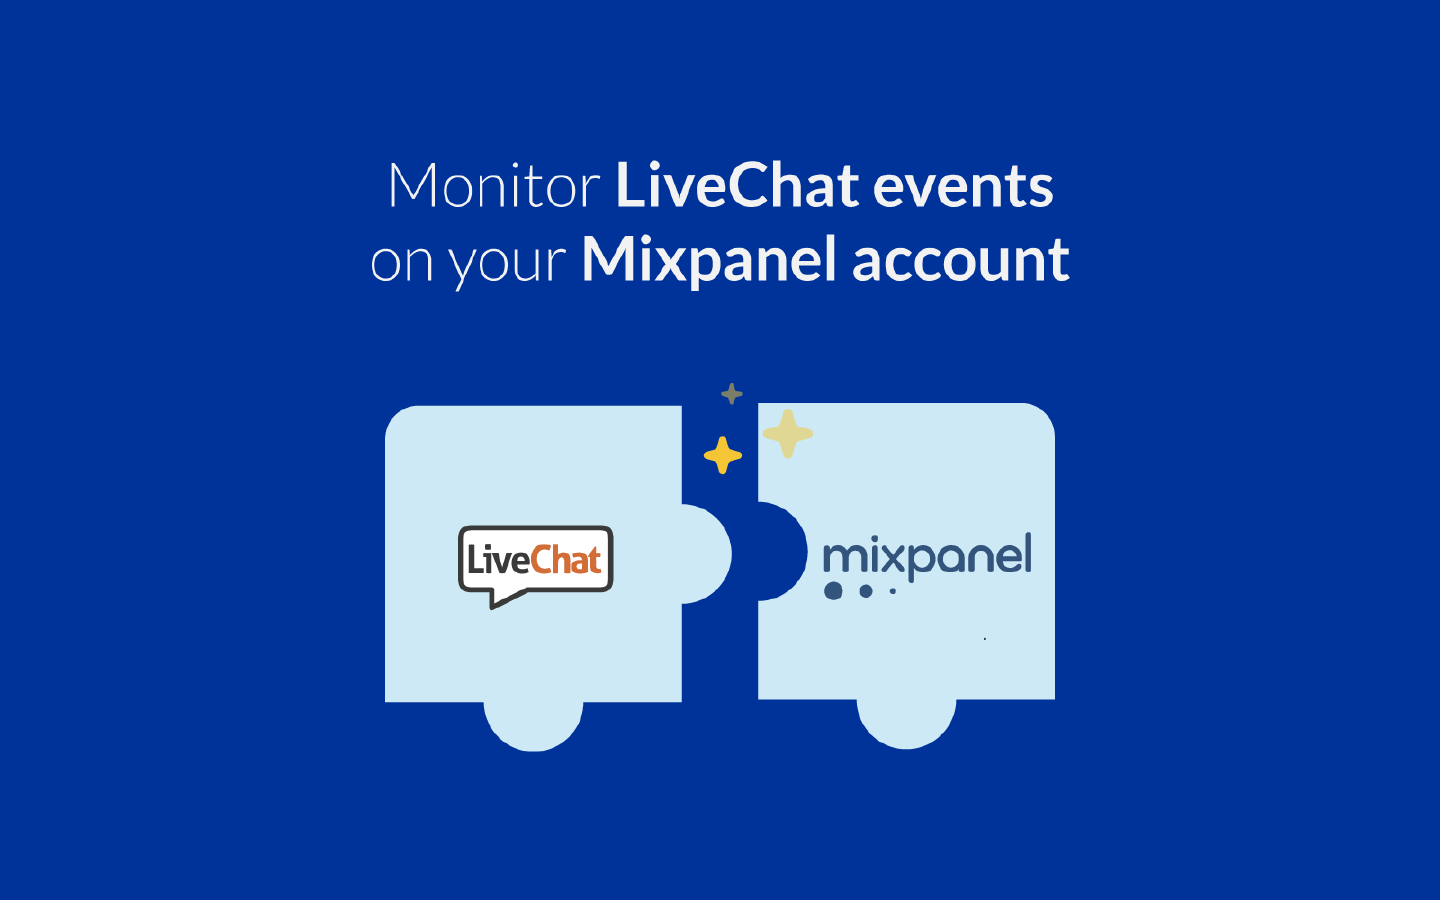 LiveChat integrates with Mixpanel